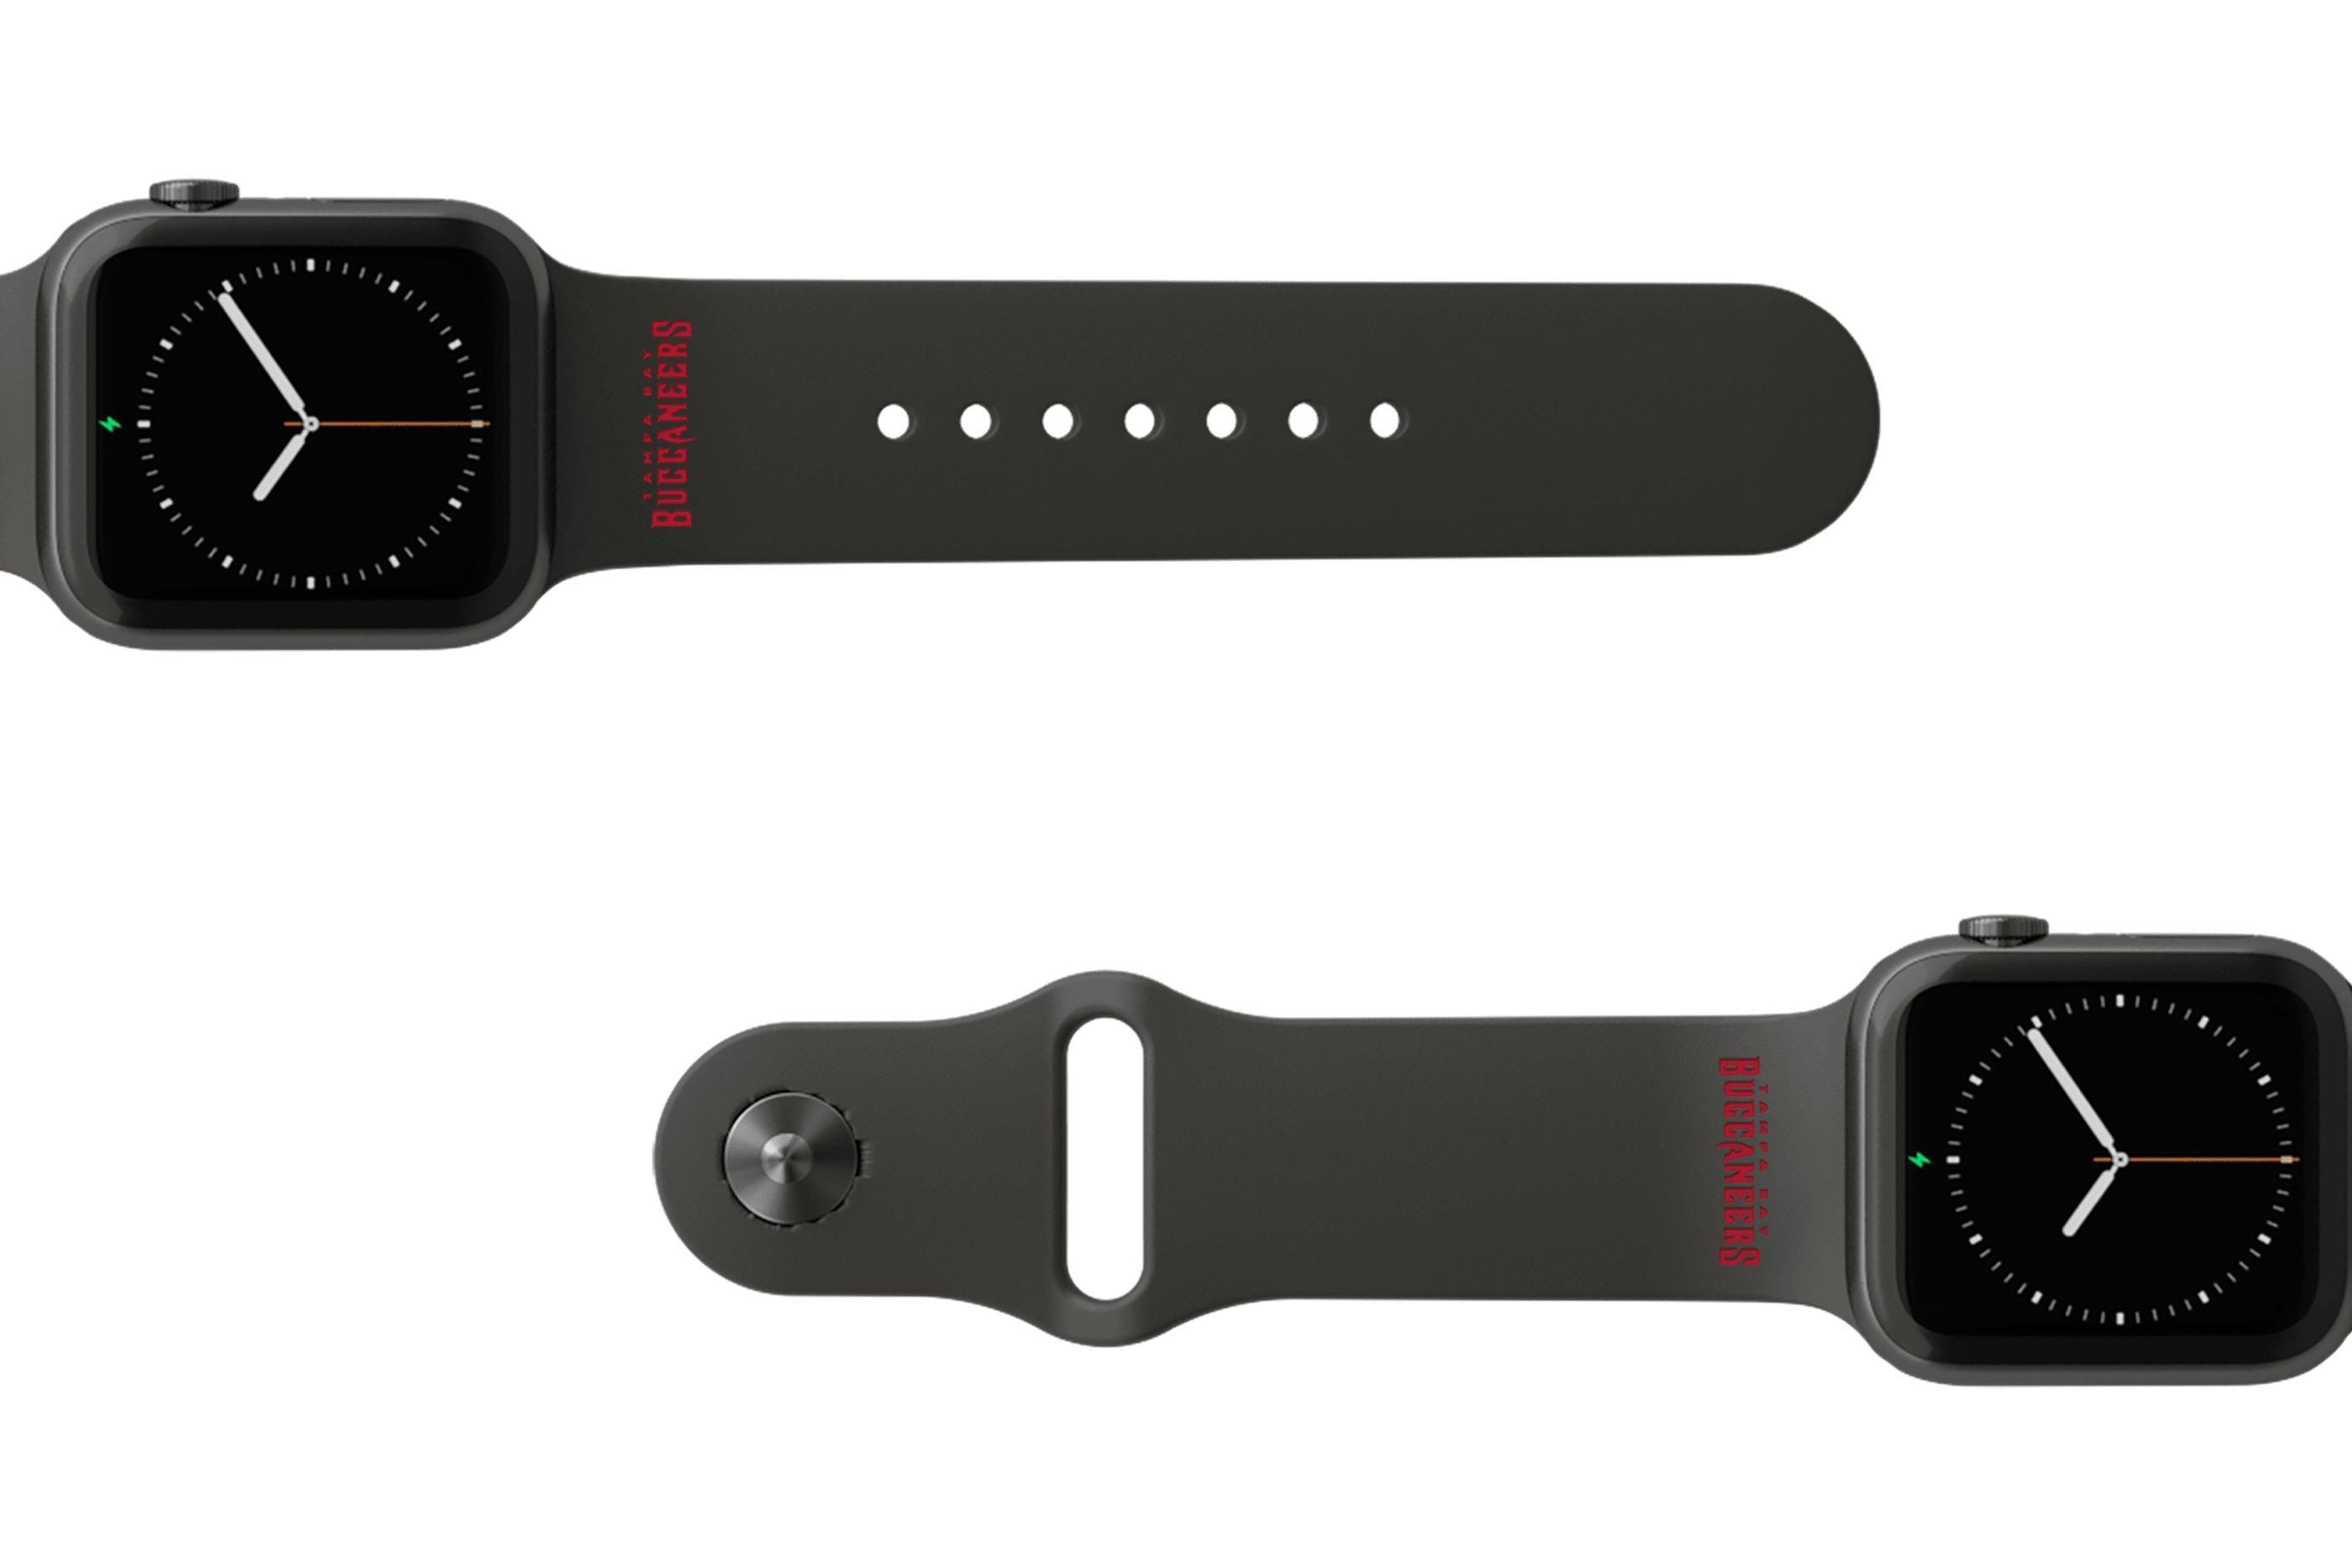 NFL Tampa Bay Buccaneers Black apple watch band with gray hardware viewed from top down